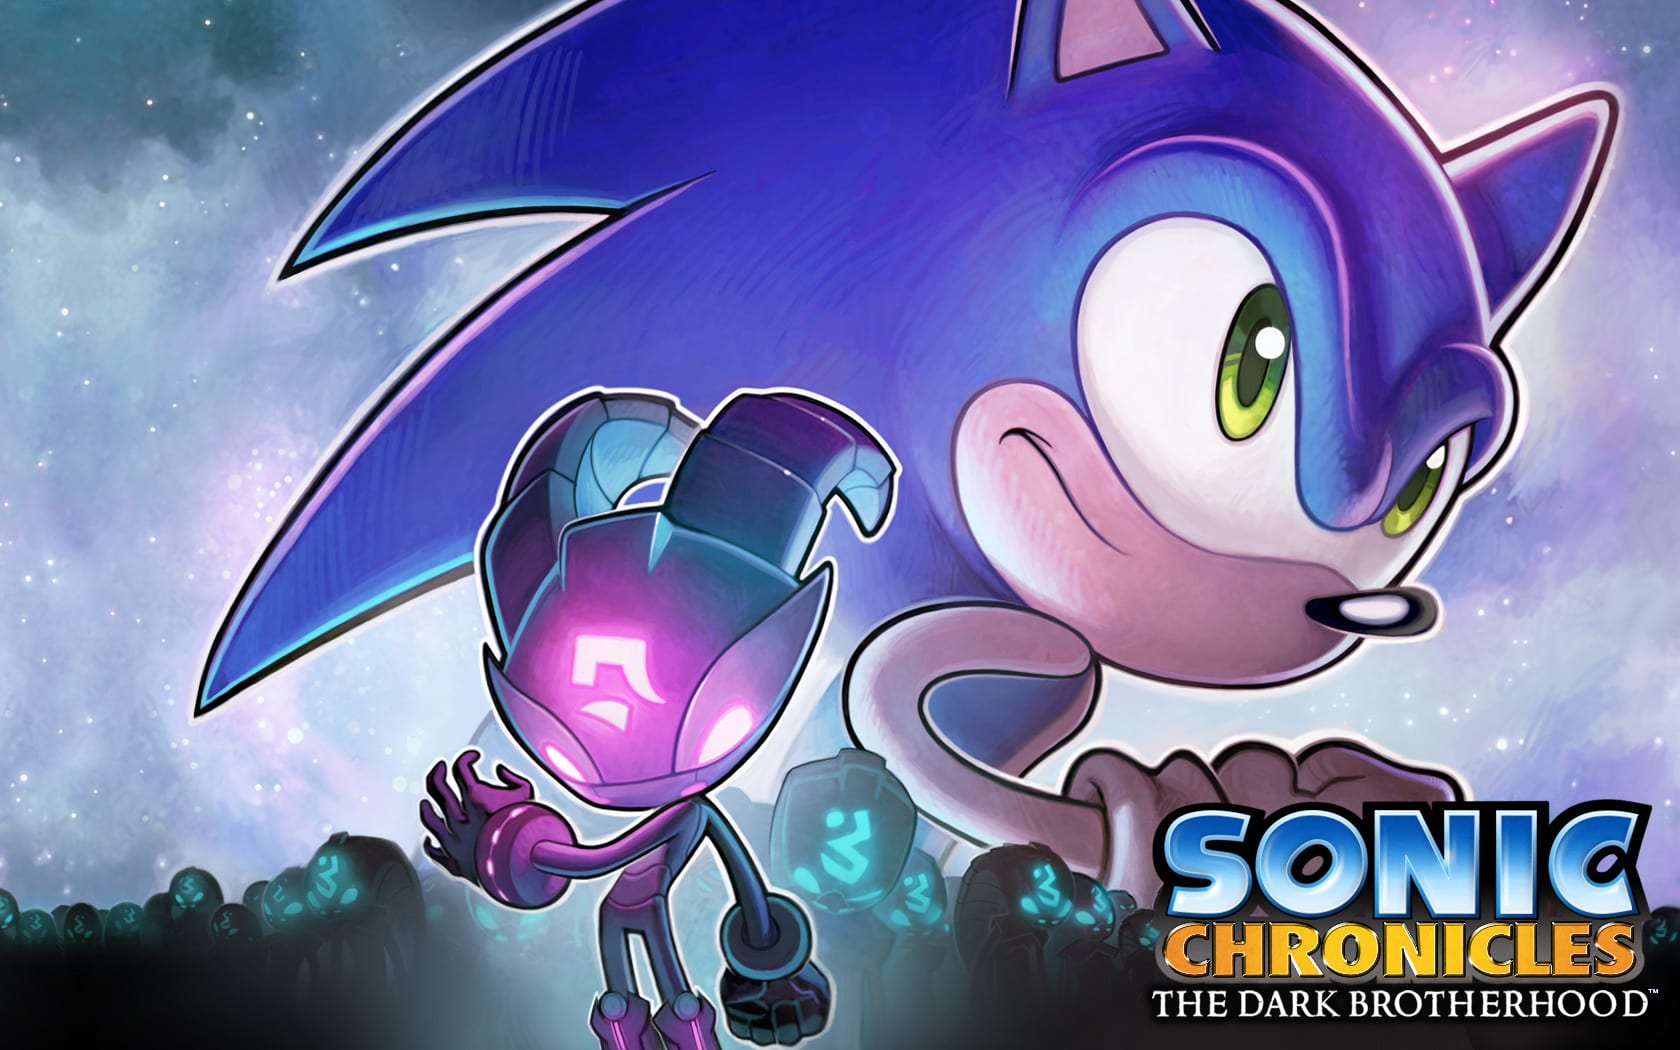 Sonic Chronicles The Dark Brotherhood